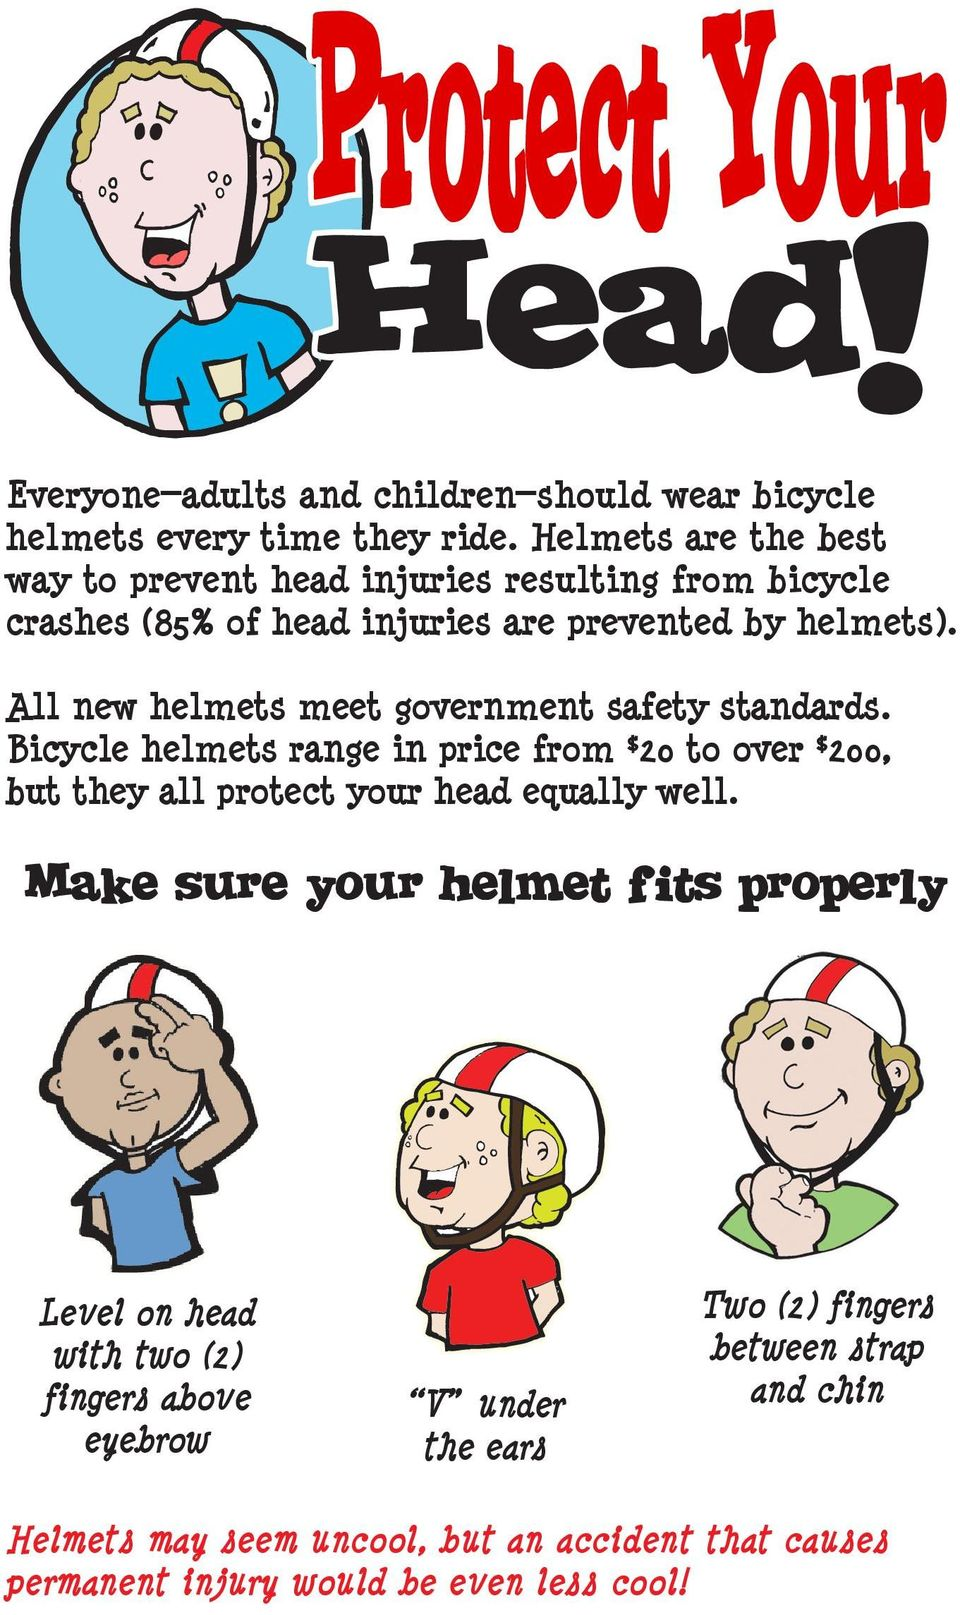 All new helmets meet government safety standards. Bicycle helmets range in price from $20 to over $200, but they all protect your head equally well.